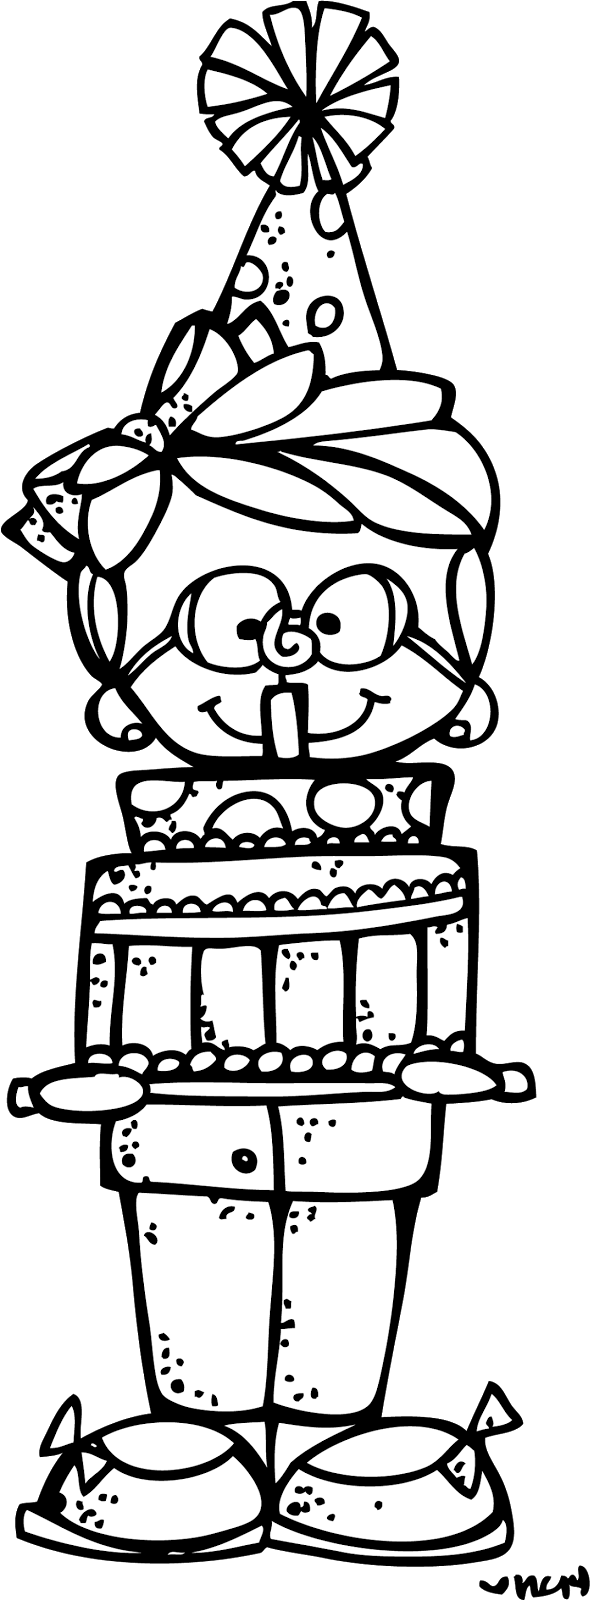 Harry the dirty dog clipart png black and white download MelonHeadz: Day 2 of the birthday week giveaway!!!!! png black and white download